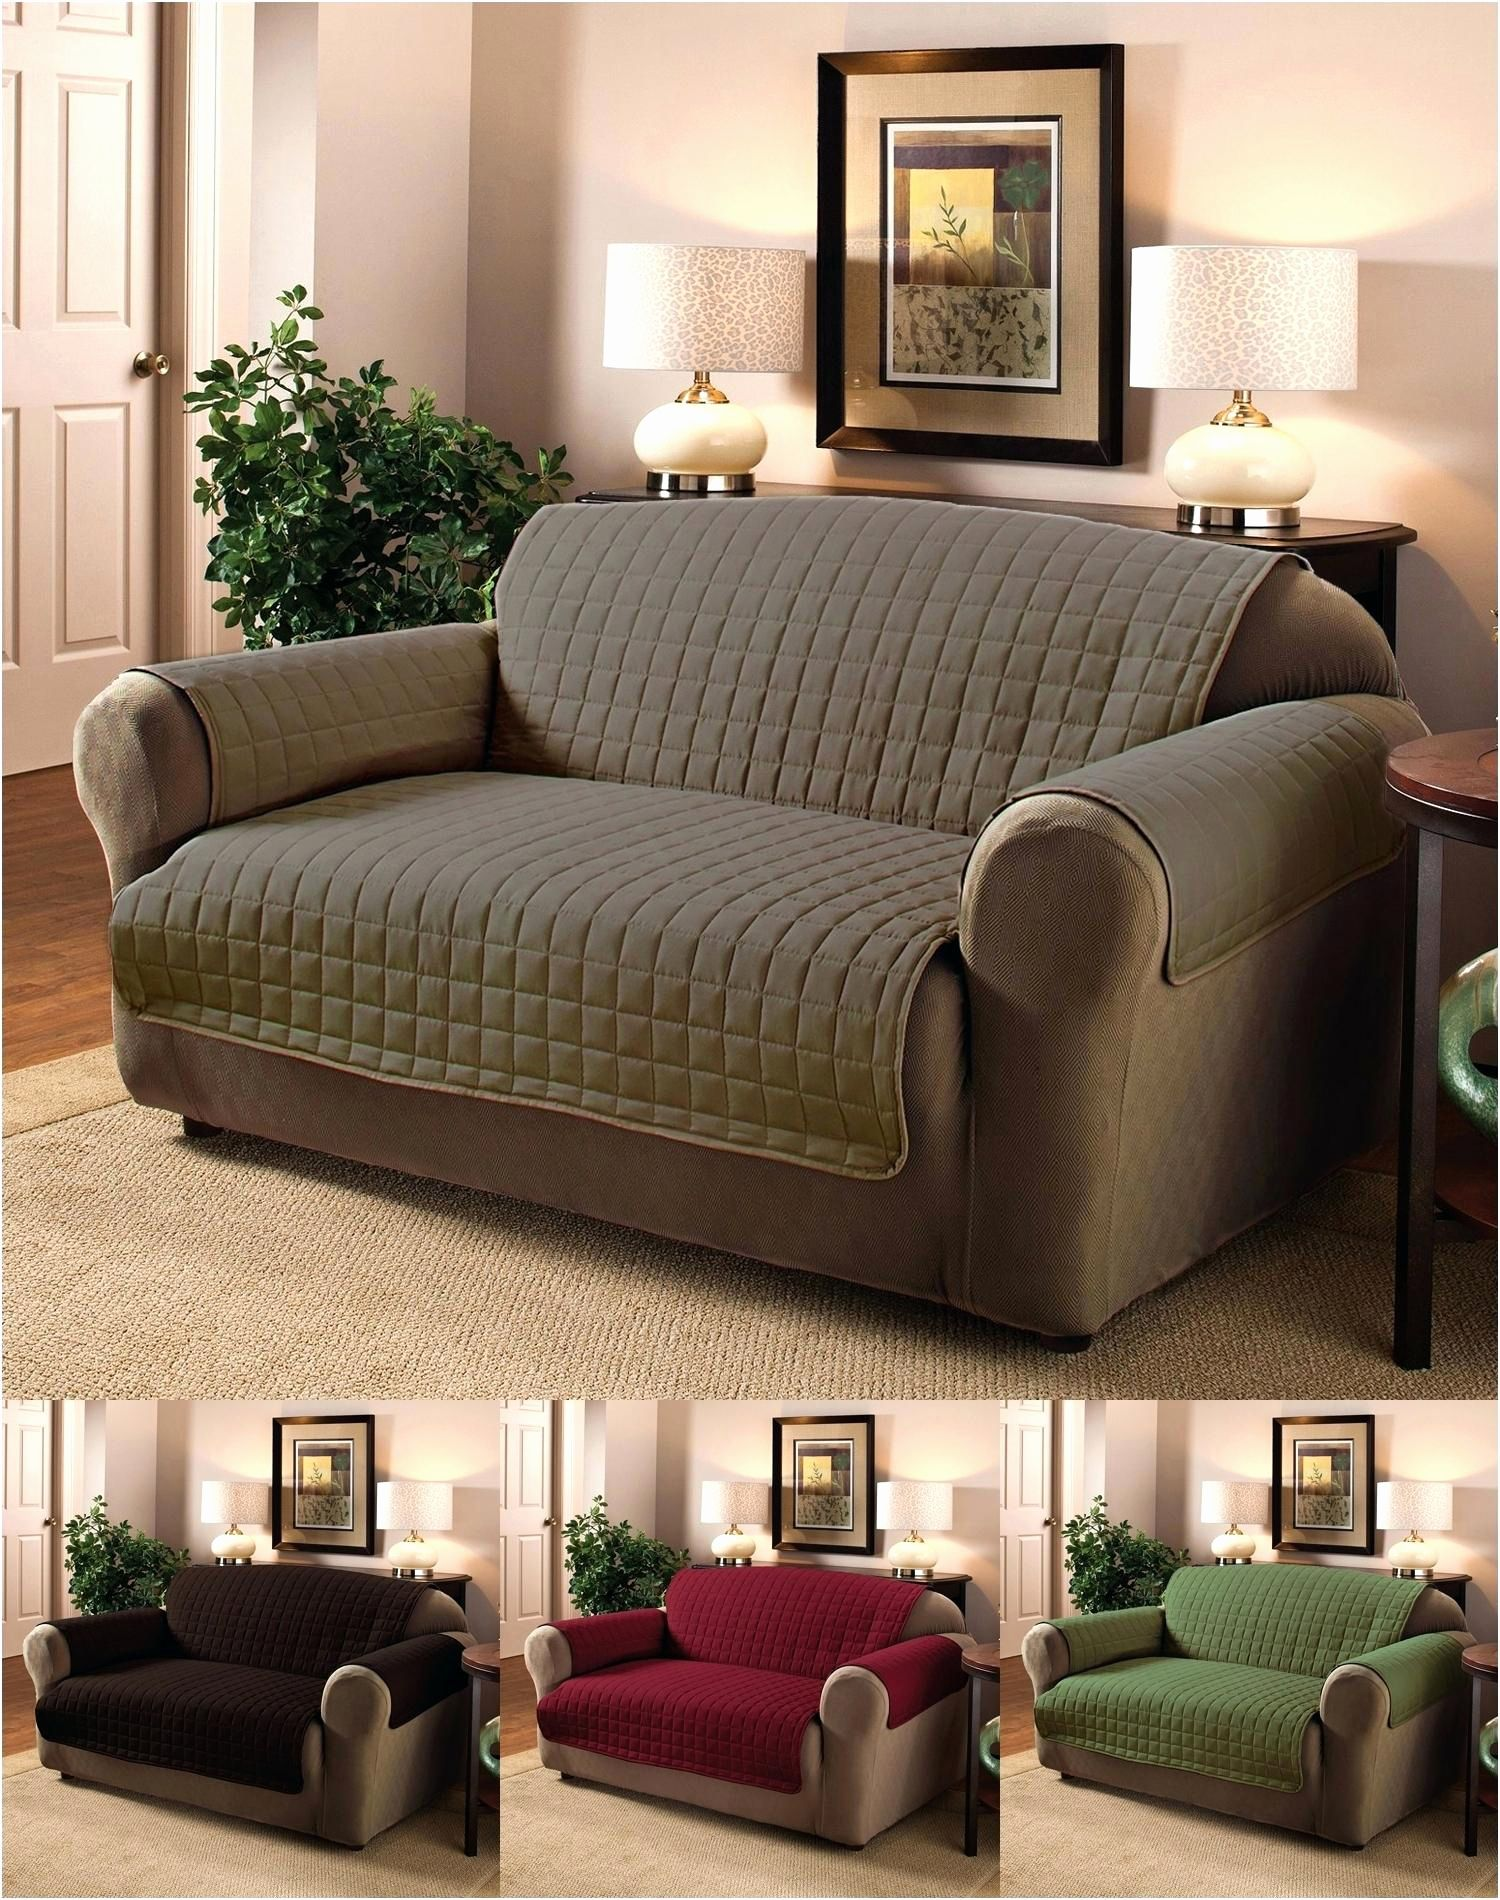 Sofa Covers Uk Luxury Sofa Covers Target Pics Sofa Covers Target Inspirational